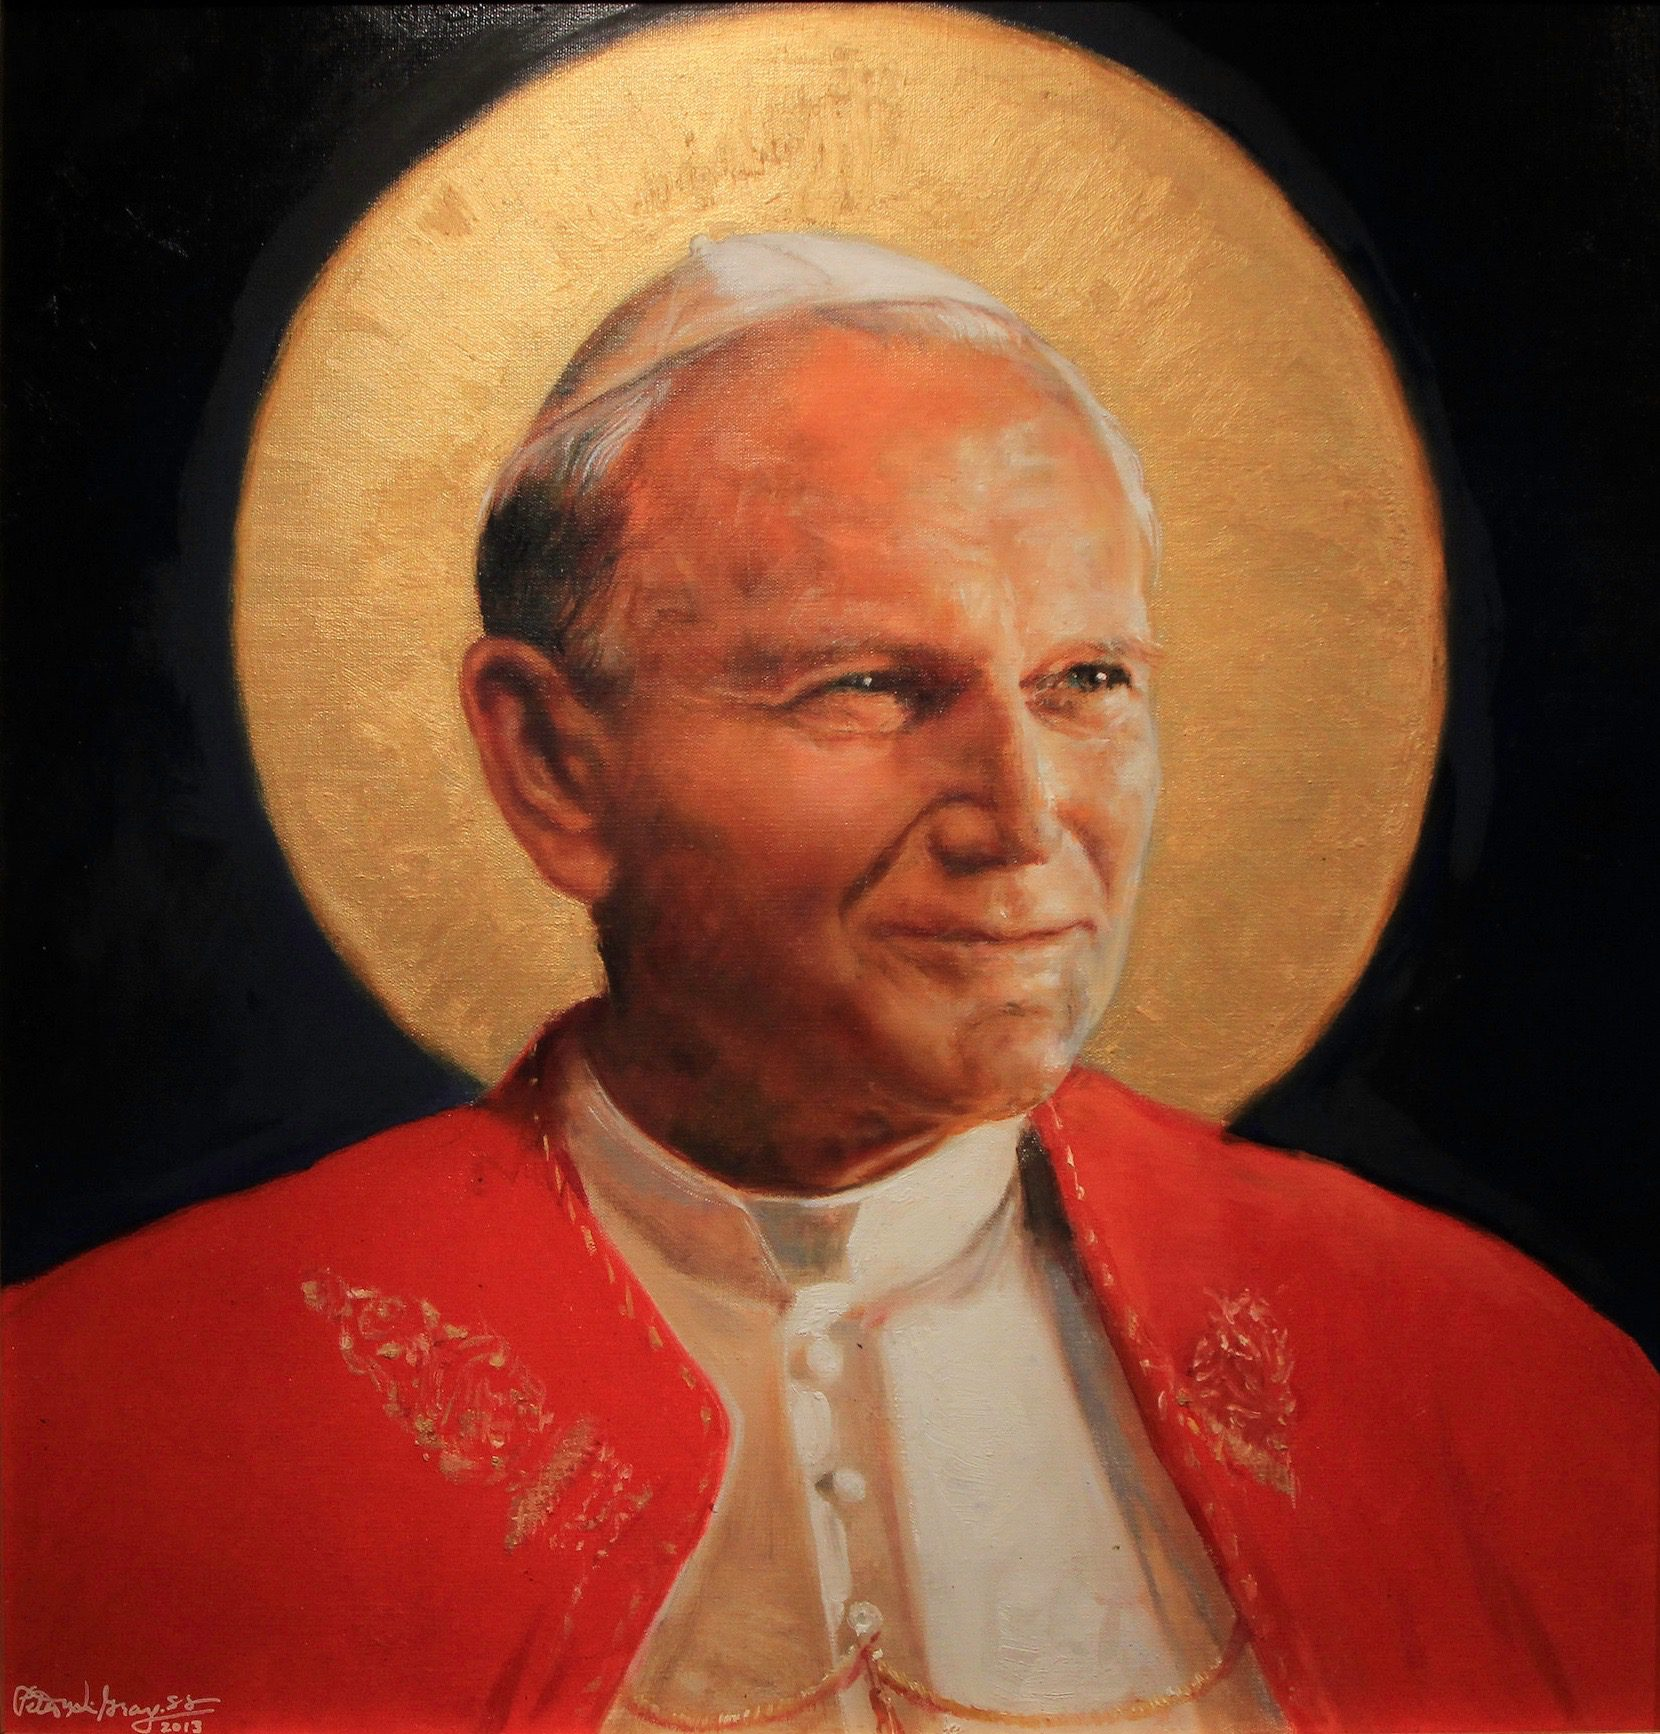 The Inspiration of St. John Paul II